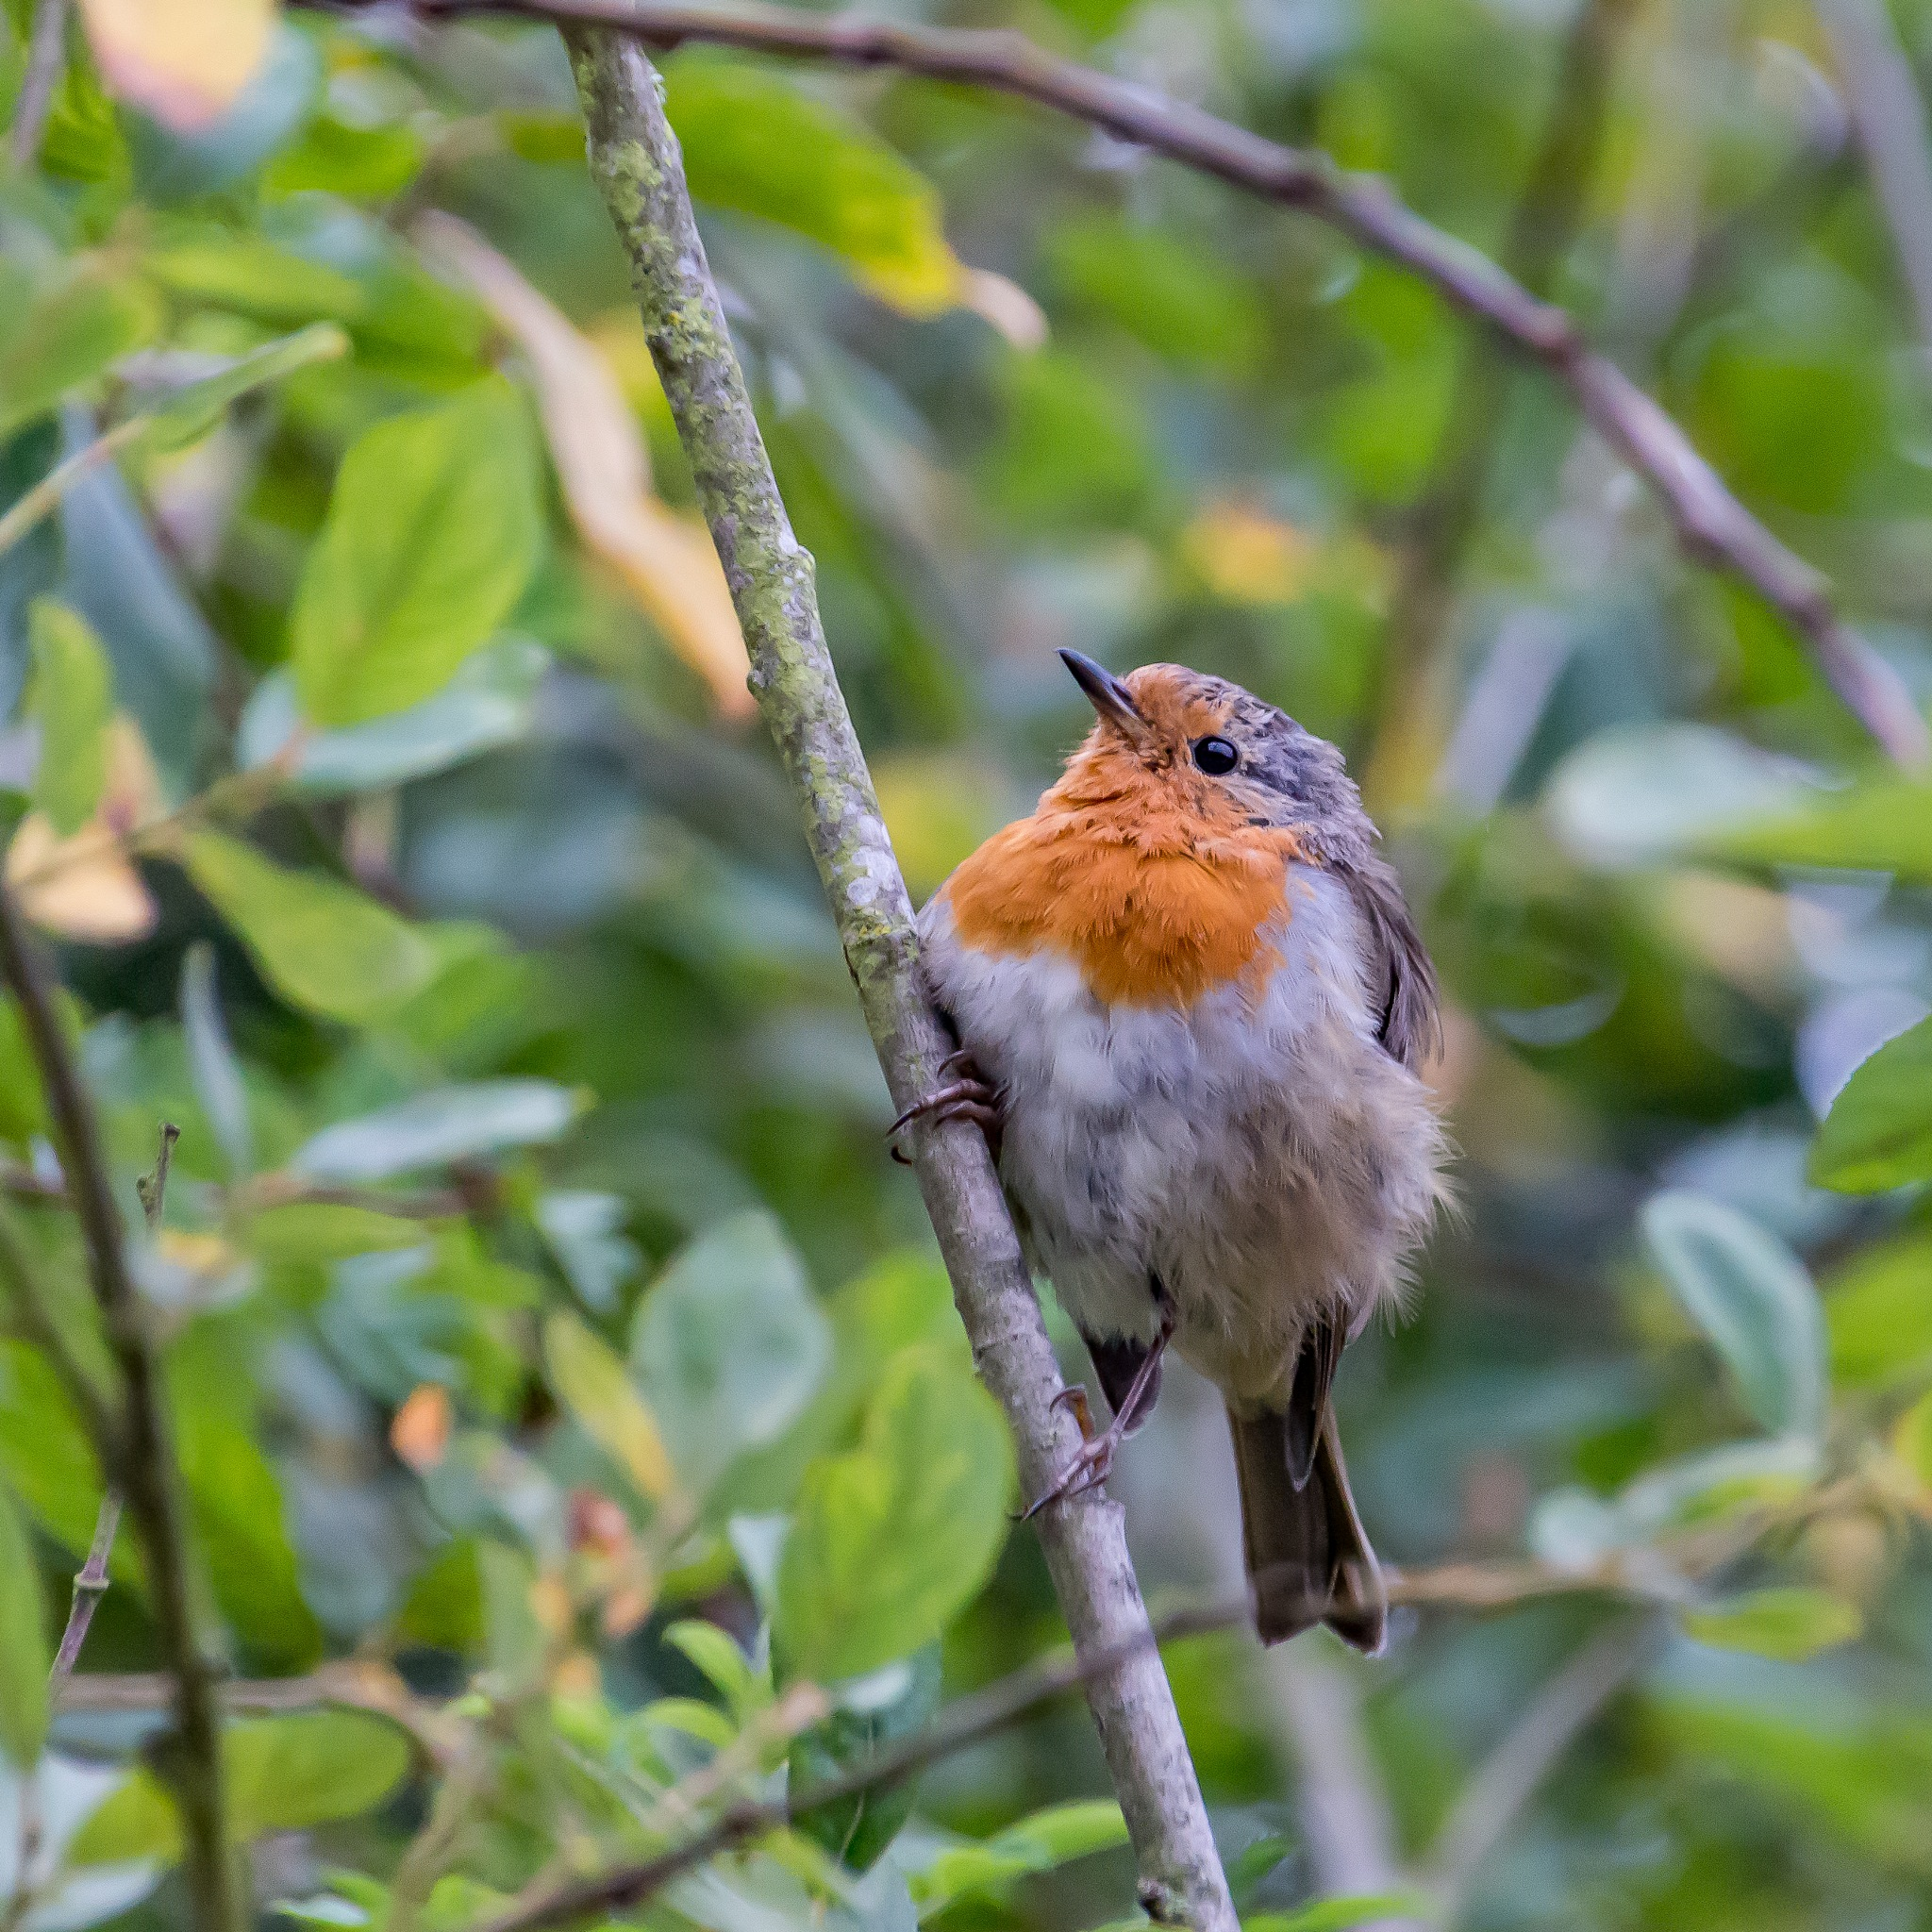 Robin red breast by kevin.wood.359126